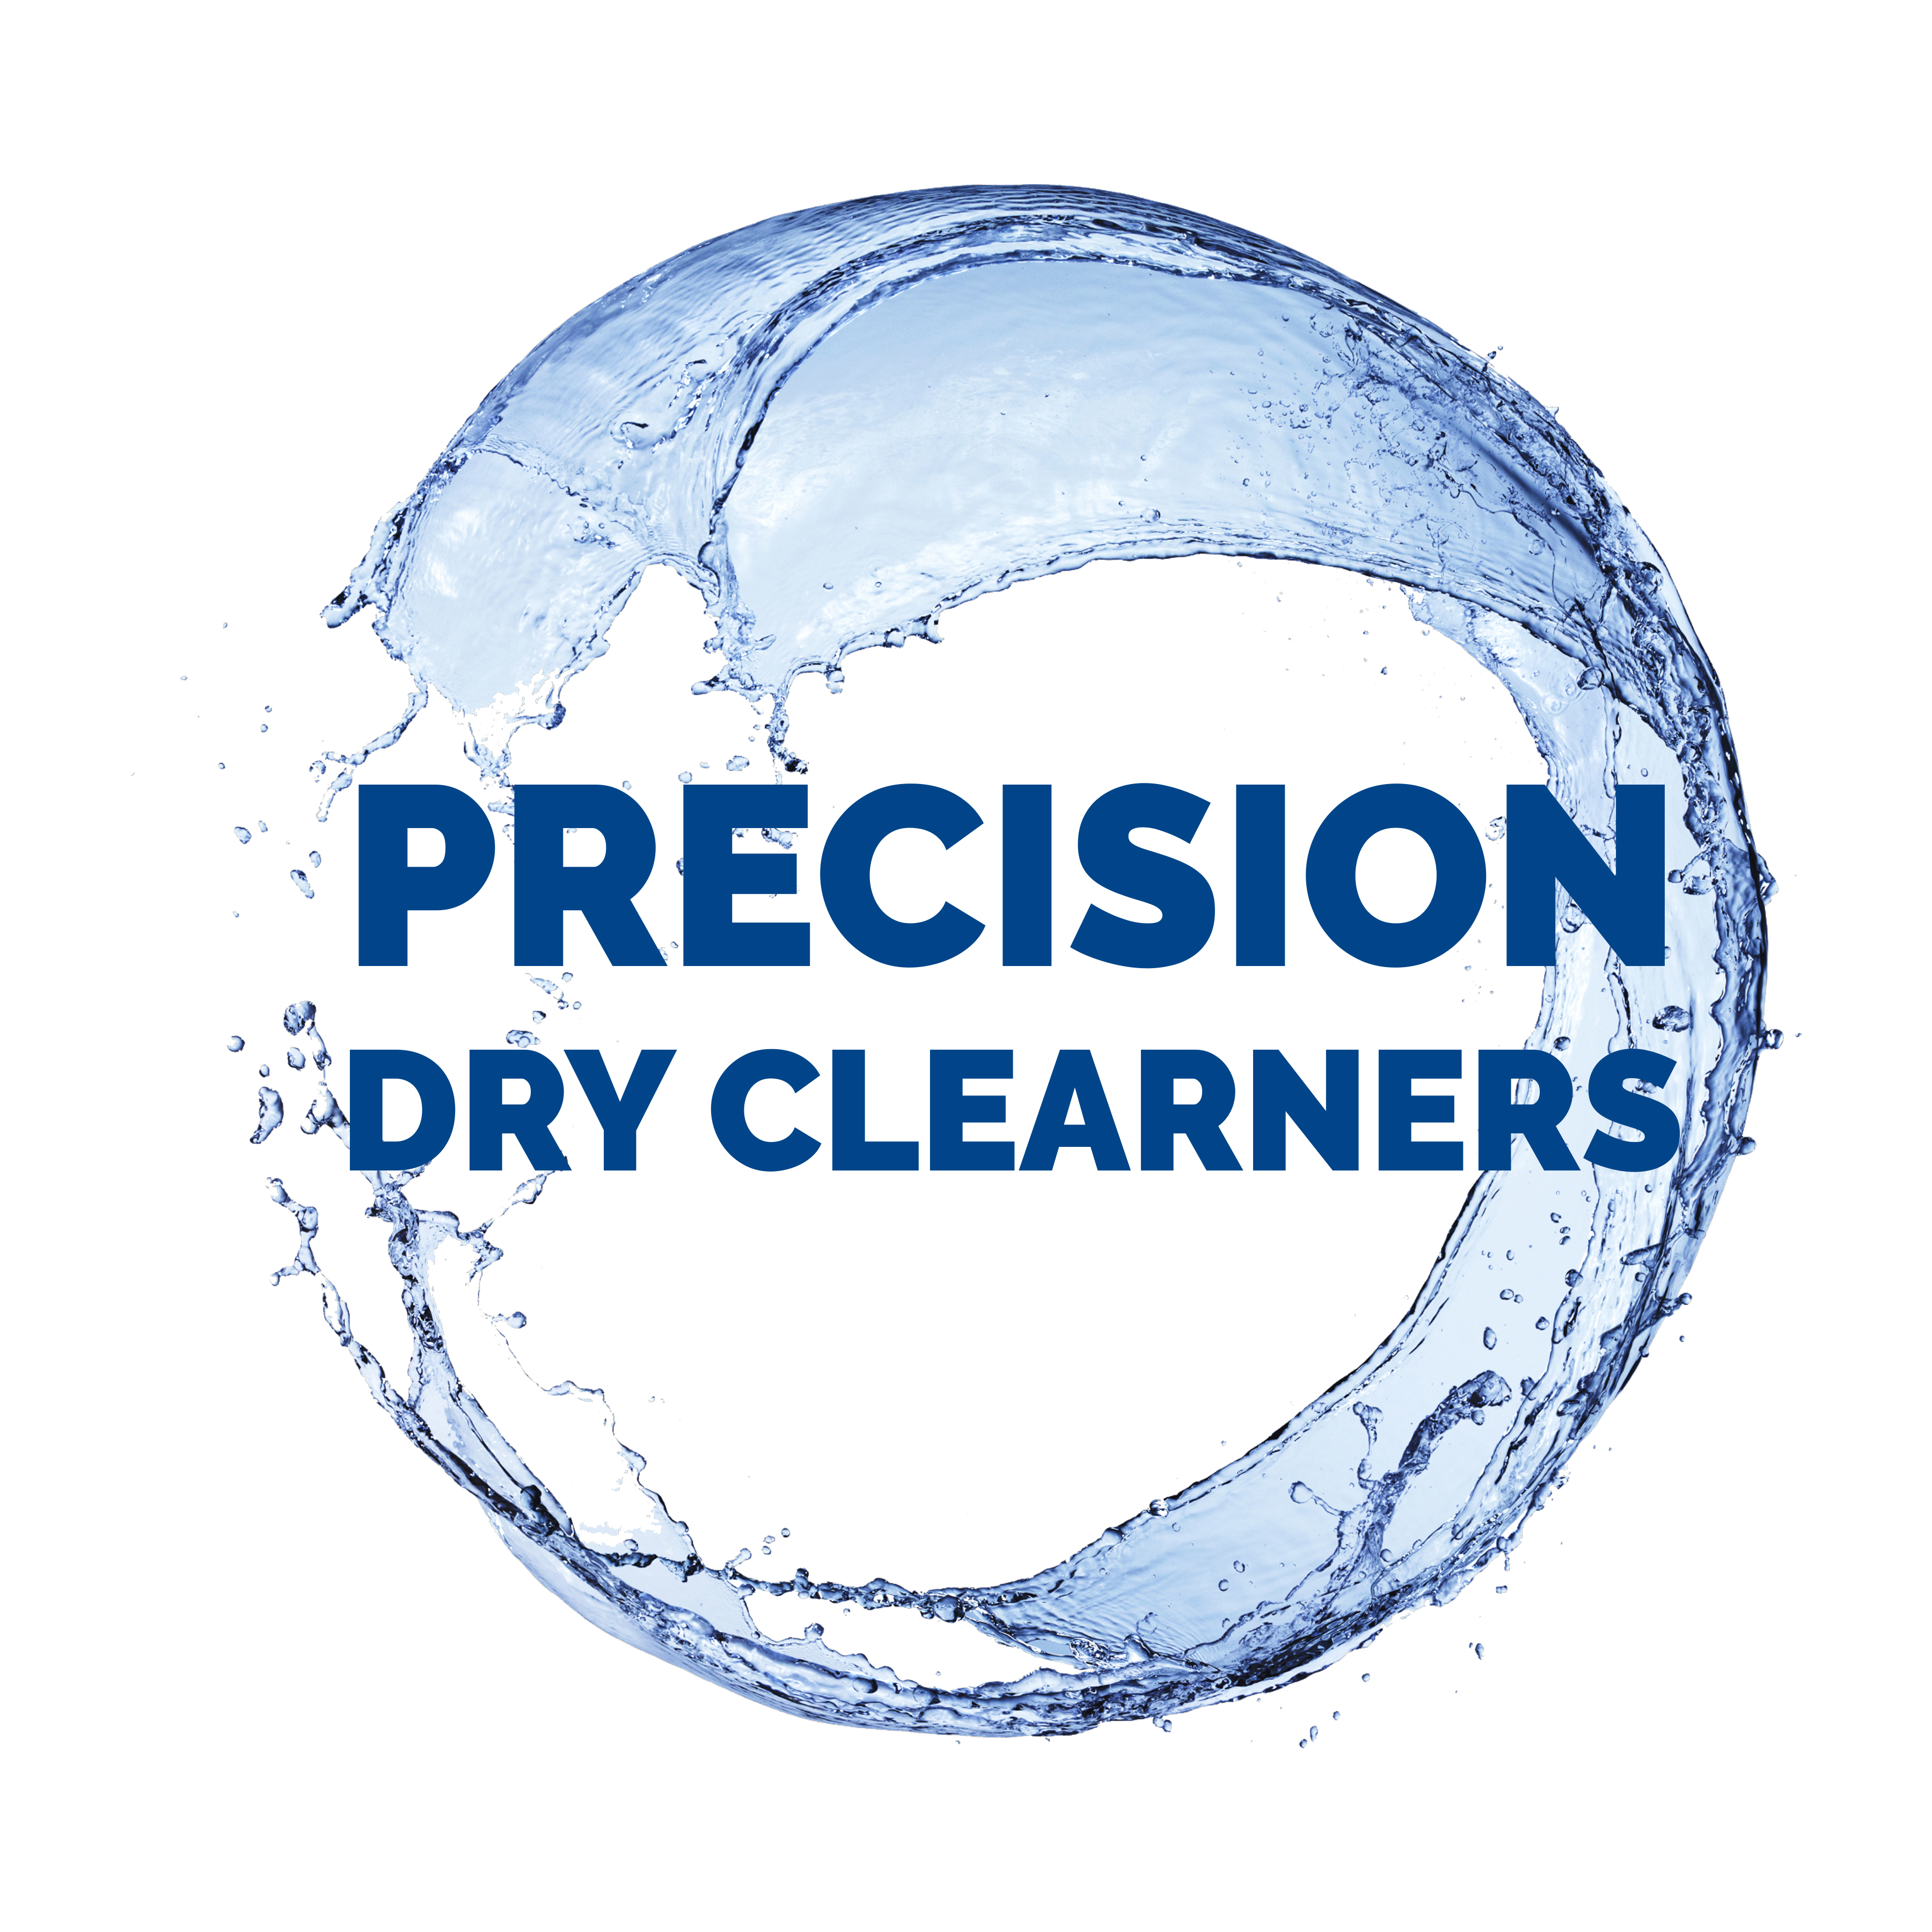 Precision Dry Cleaners Bexleyheath